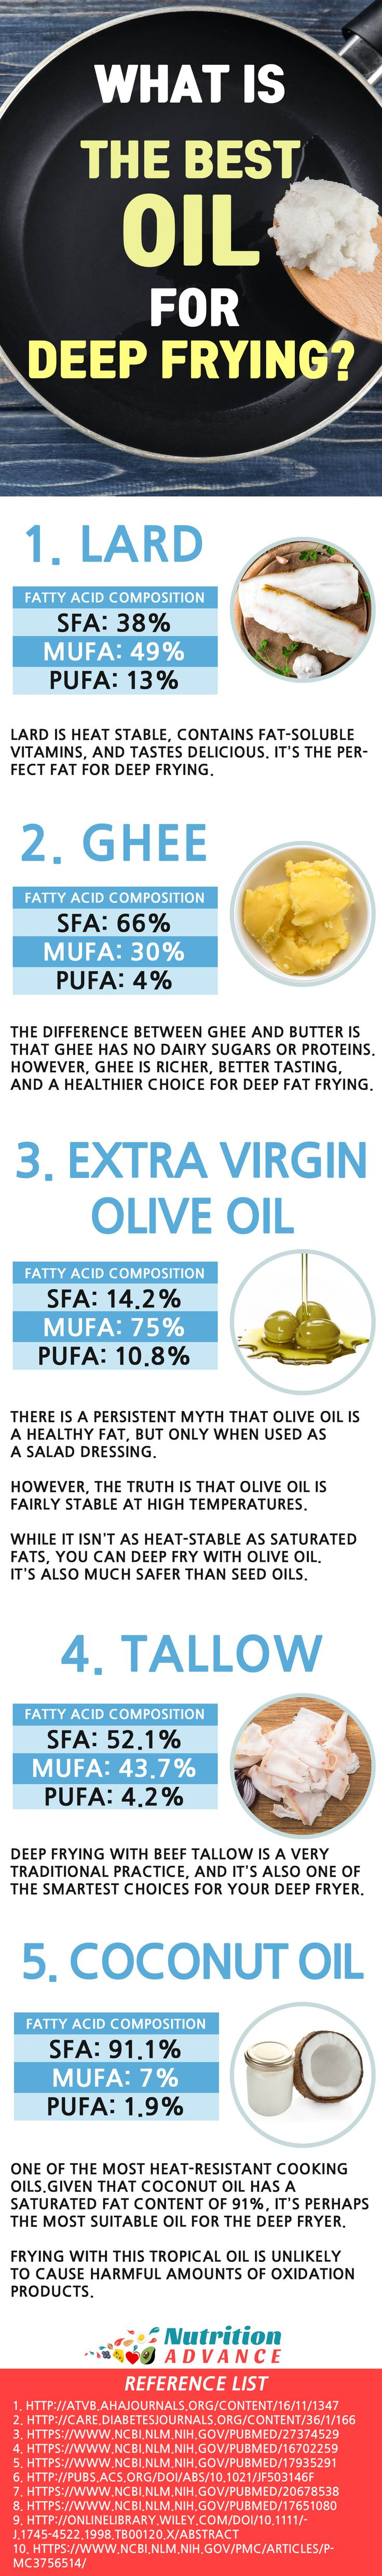 What is the Best Oil For Deep Frying? Making deep-fried food is never the healthiest of options, but if you do it's important to know the best cooking fats to choose. This article looks at some of the best choices such as lard, ghee, tallow, coconut oil, and olive oil. The article also shows how to minimize risk from frying food. No matter what diet (keto, low carb, vegan, etc) you are on choosing the right fats is important! Read more at: http://nutritionadvance.com/best-oil-for-deep-frying